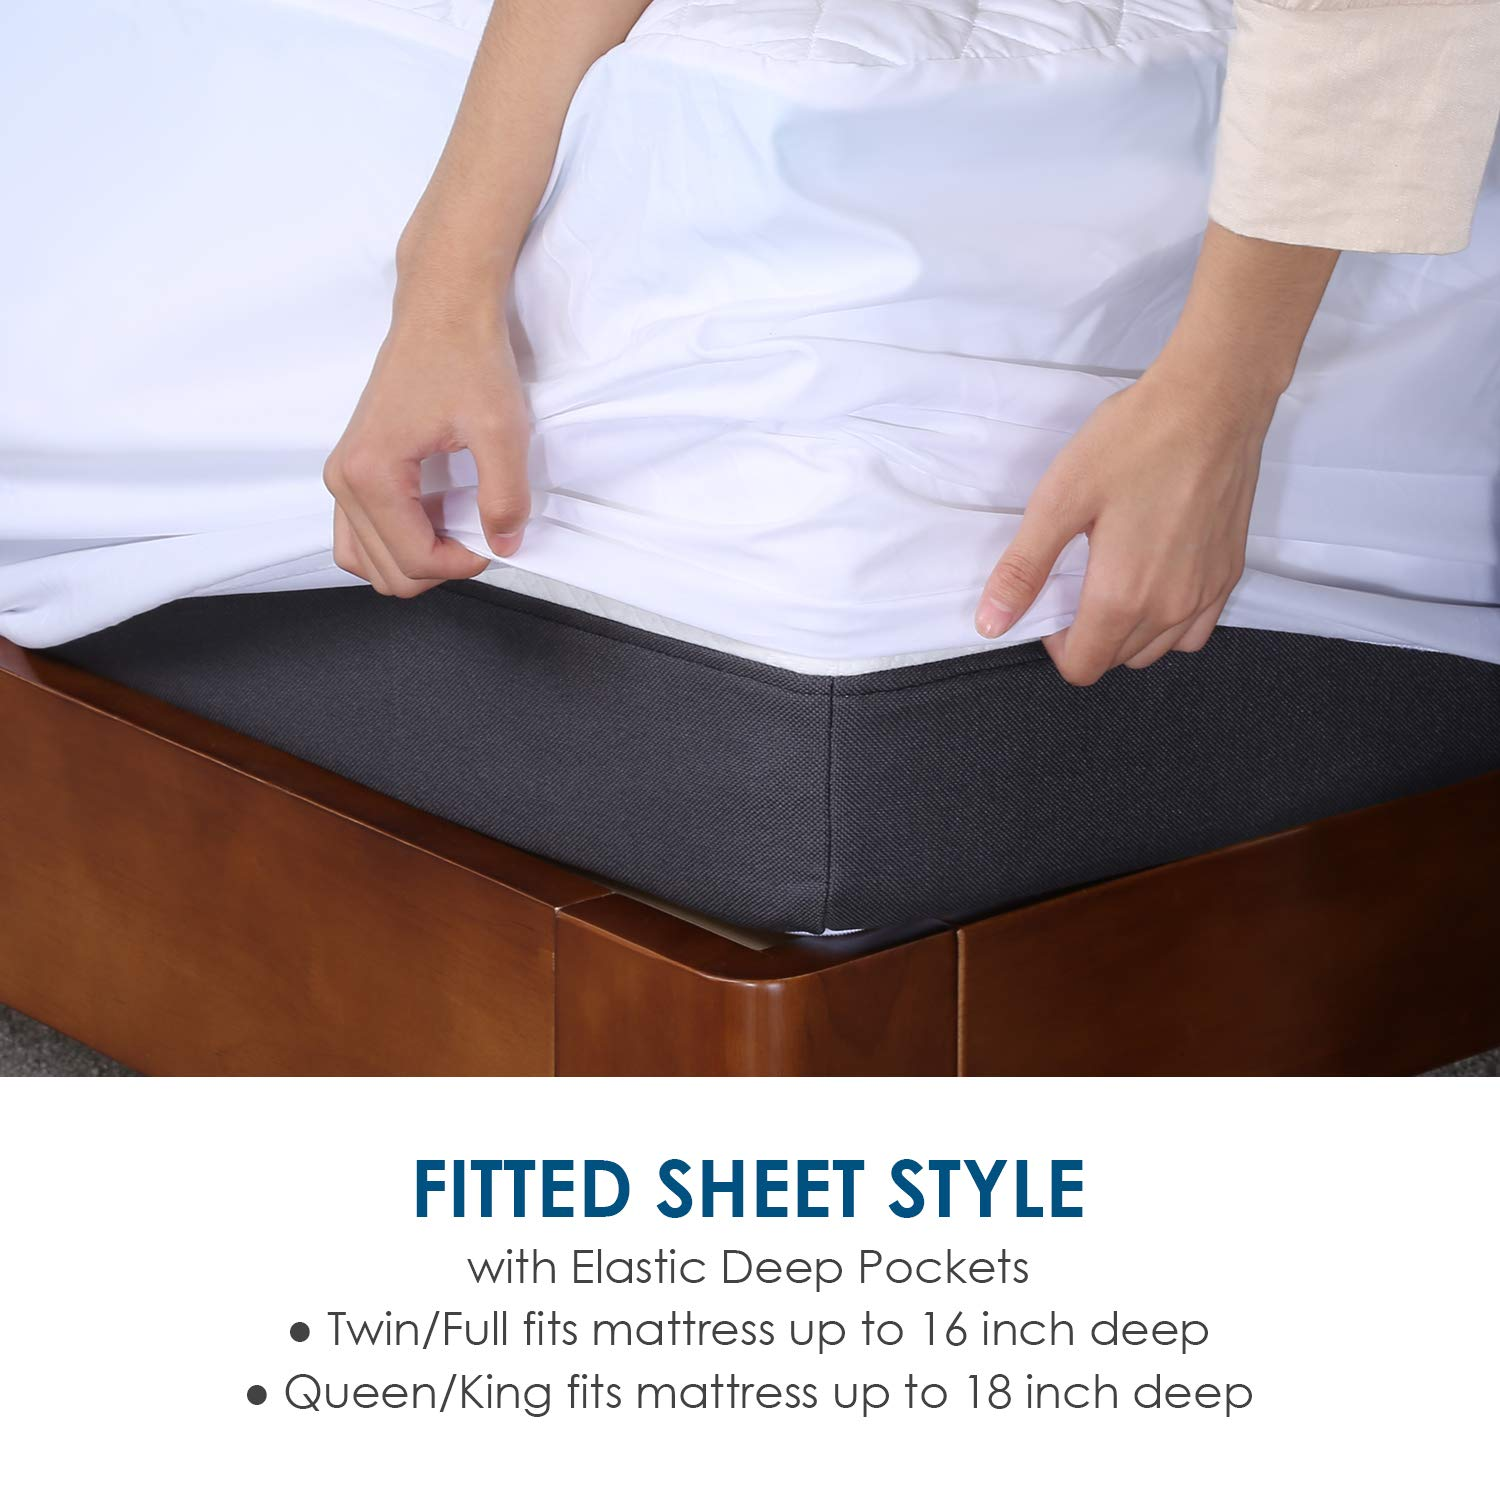 Hypoallergenic and Protects Against Dust Mites and Bed Bug King Size HIFORT Waterproof Mattress Quilted Protector Fitted Sheet Style with Deep Pocket Fits Up to 18 Inch